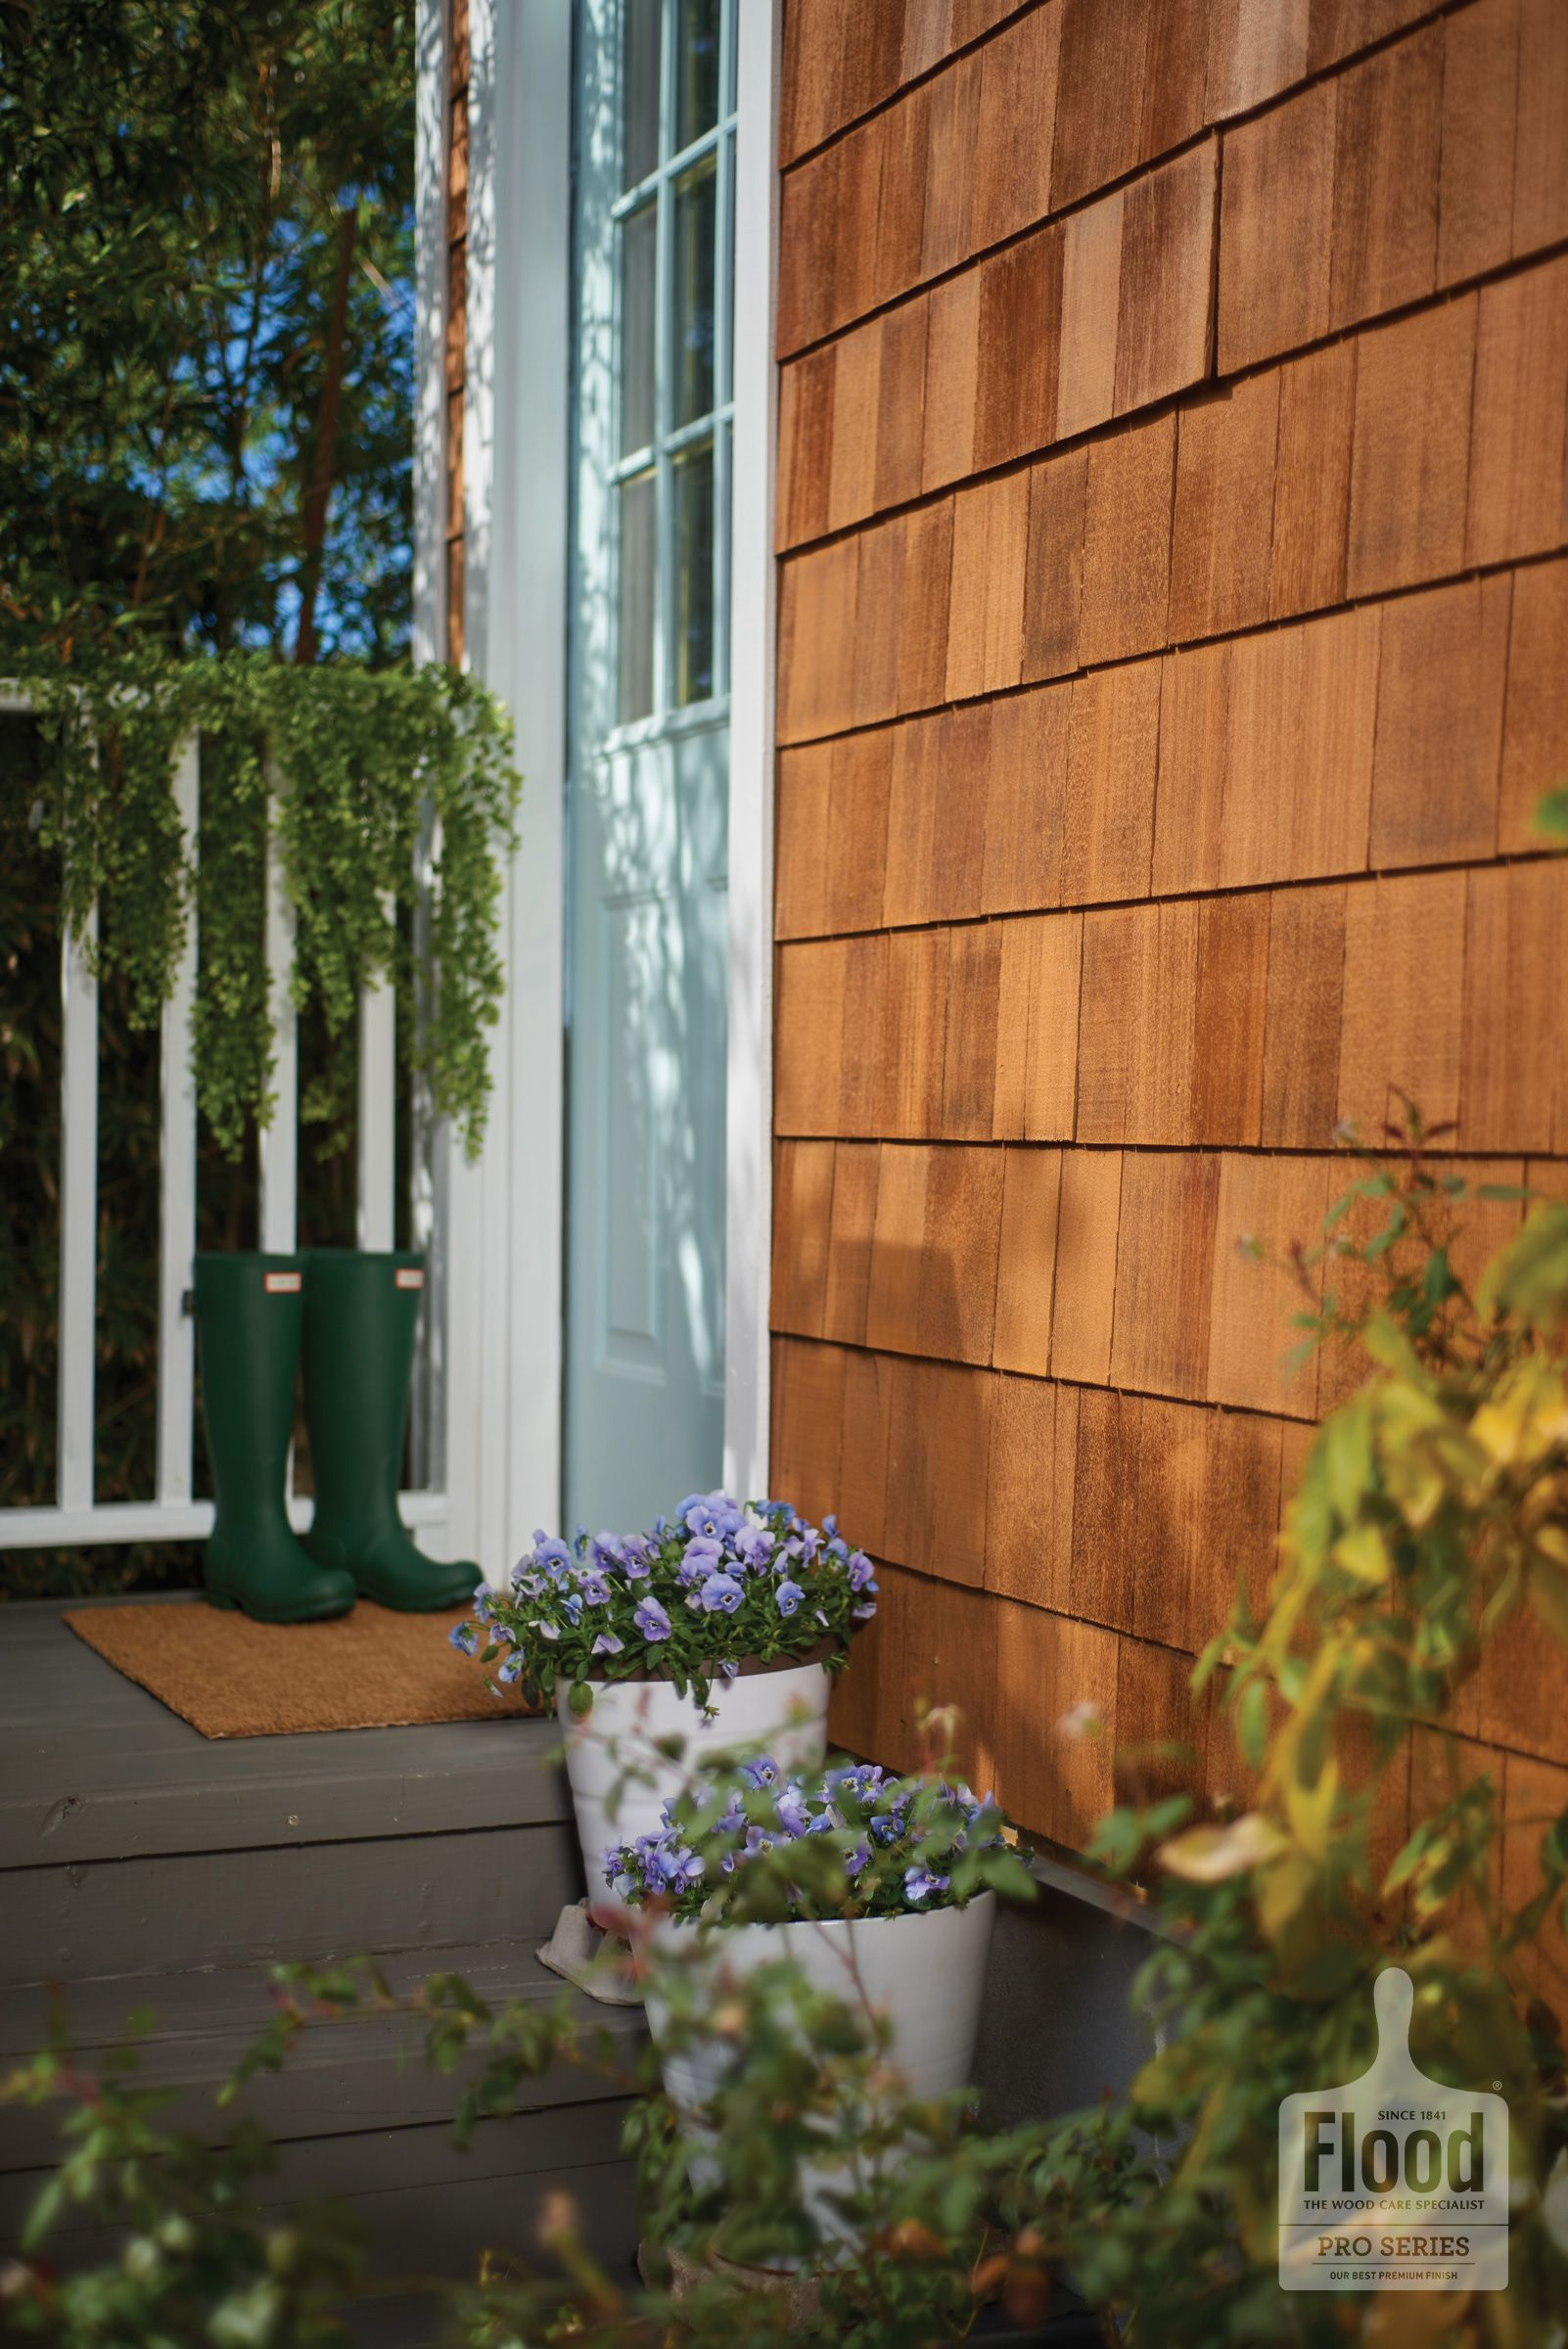 Flood Pro Series Cwf Uv 5 Wood Stain In Honey Gold Provides Translucent Protection That Lets The Woo House Paint Exterior Wood Siding Exterior Exterior Stain